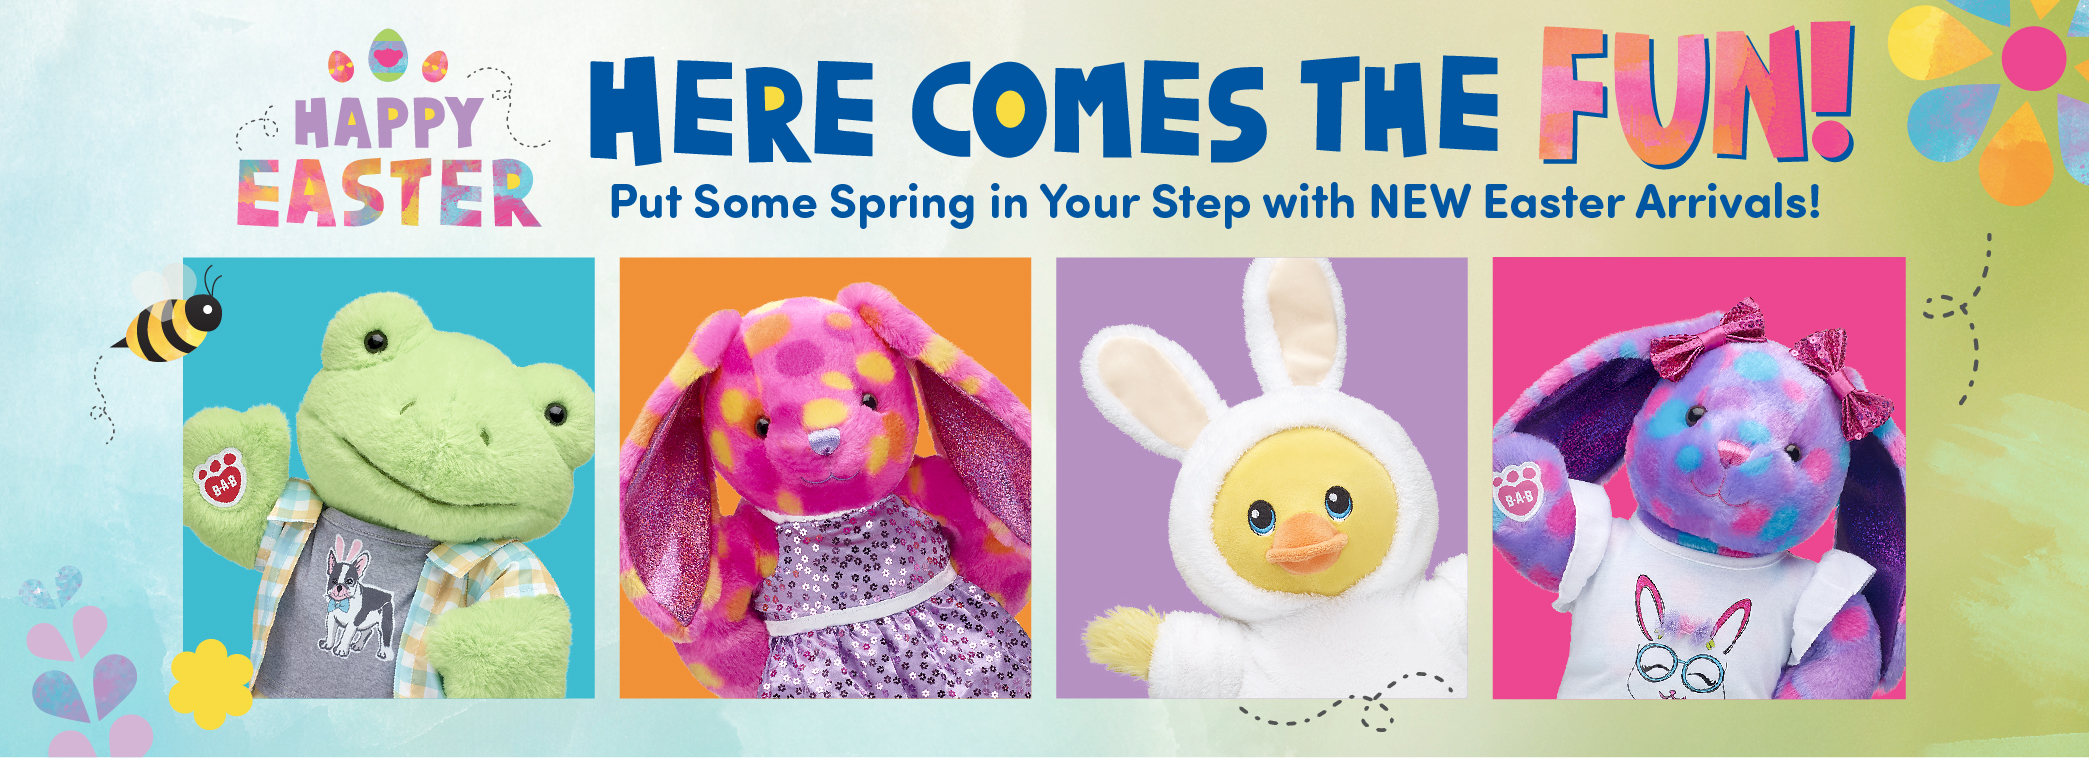 Here Comes the Fun Easter Collection